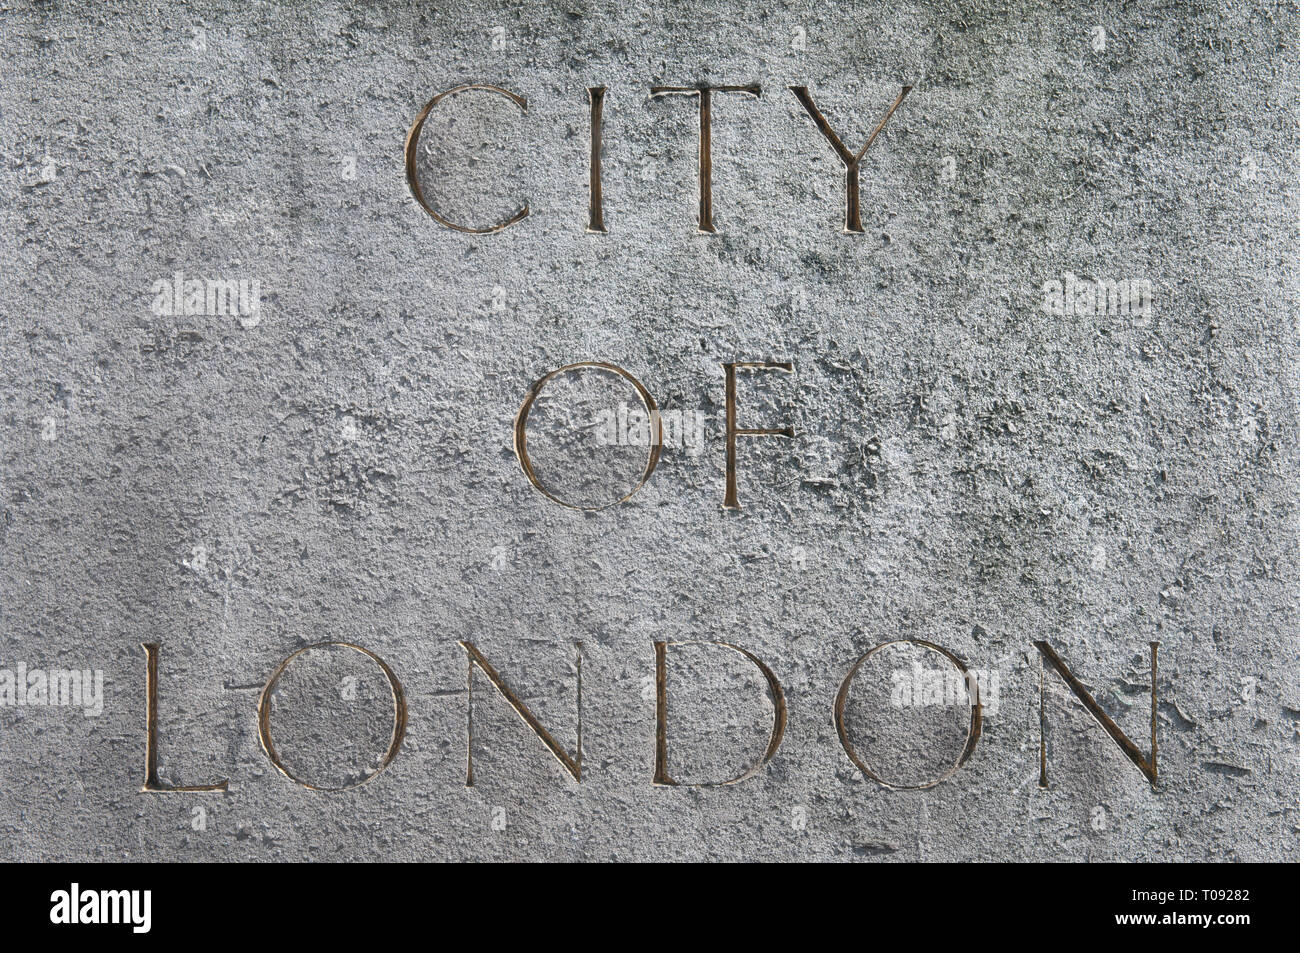 Gold Lettering Carved Into Stone Indicating One Of The Entrances Into The City Of London - Stock Image